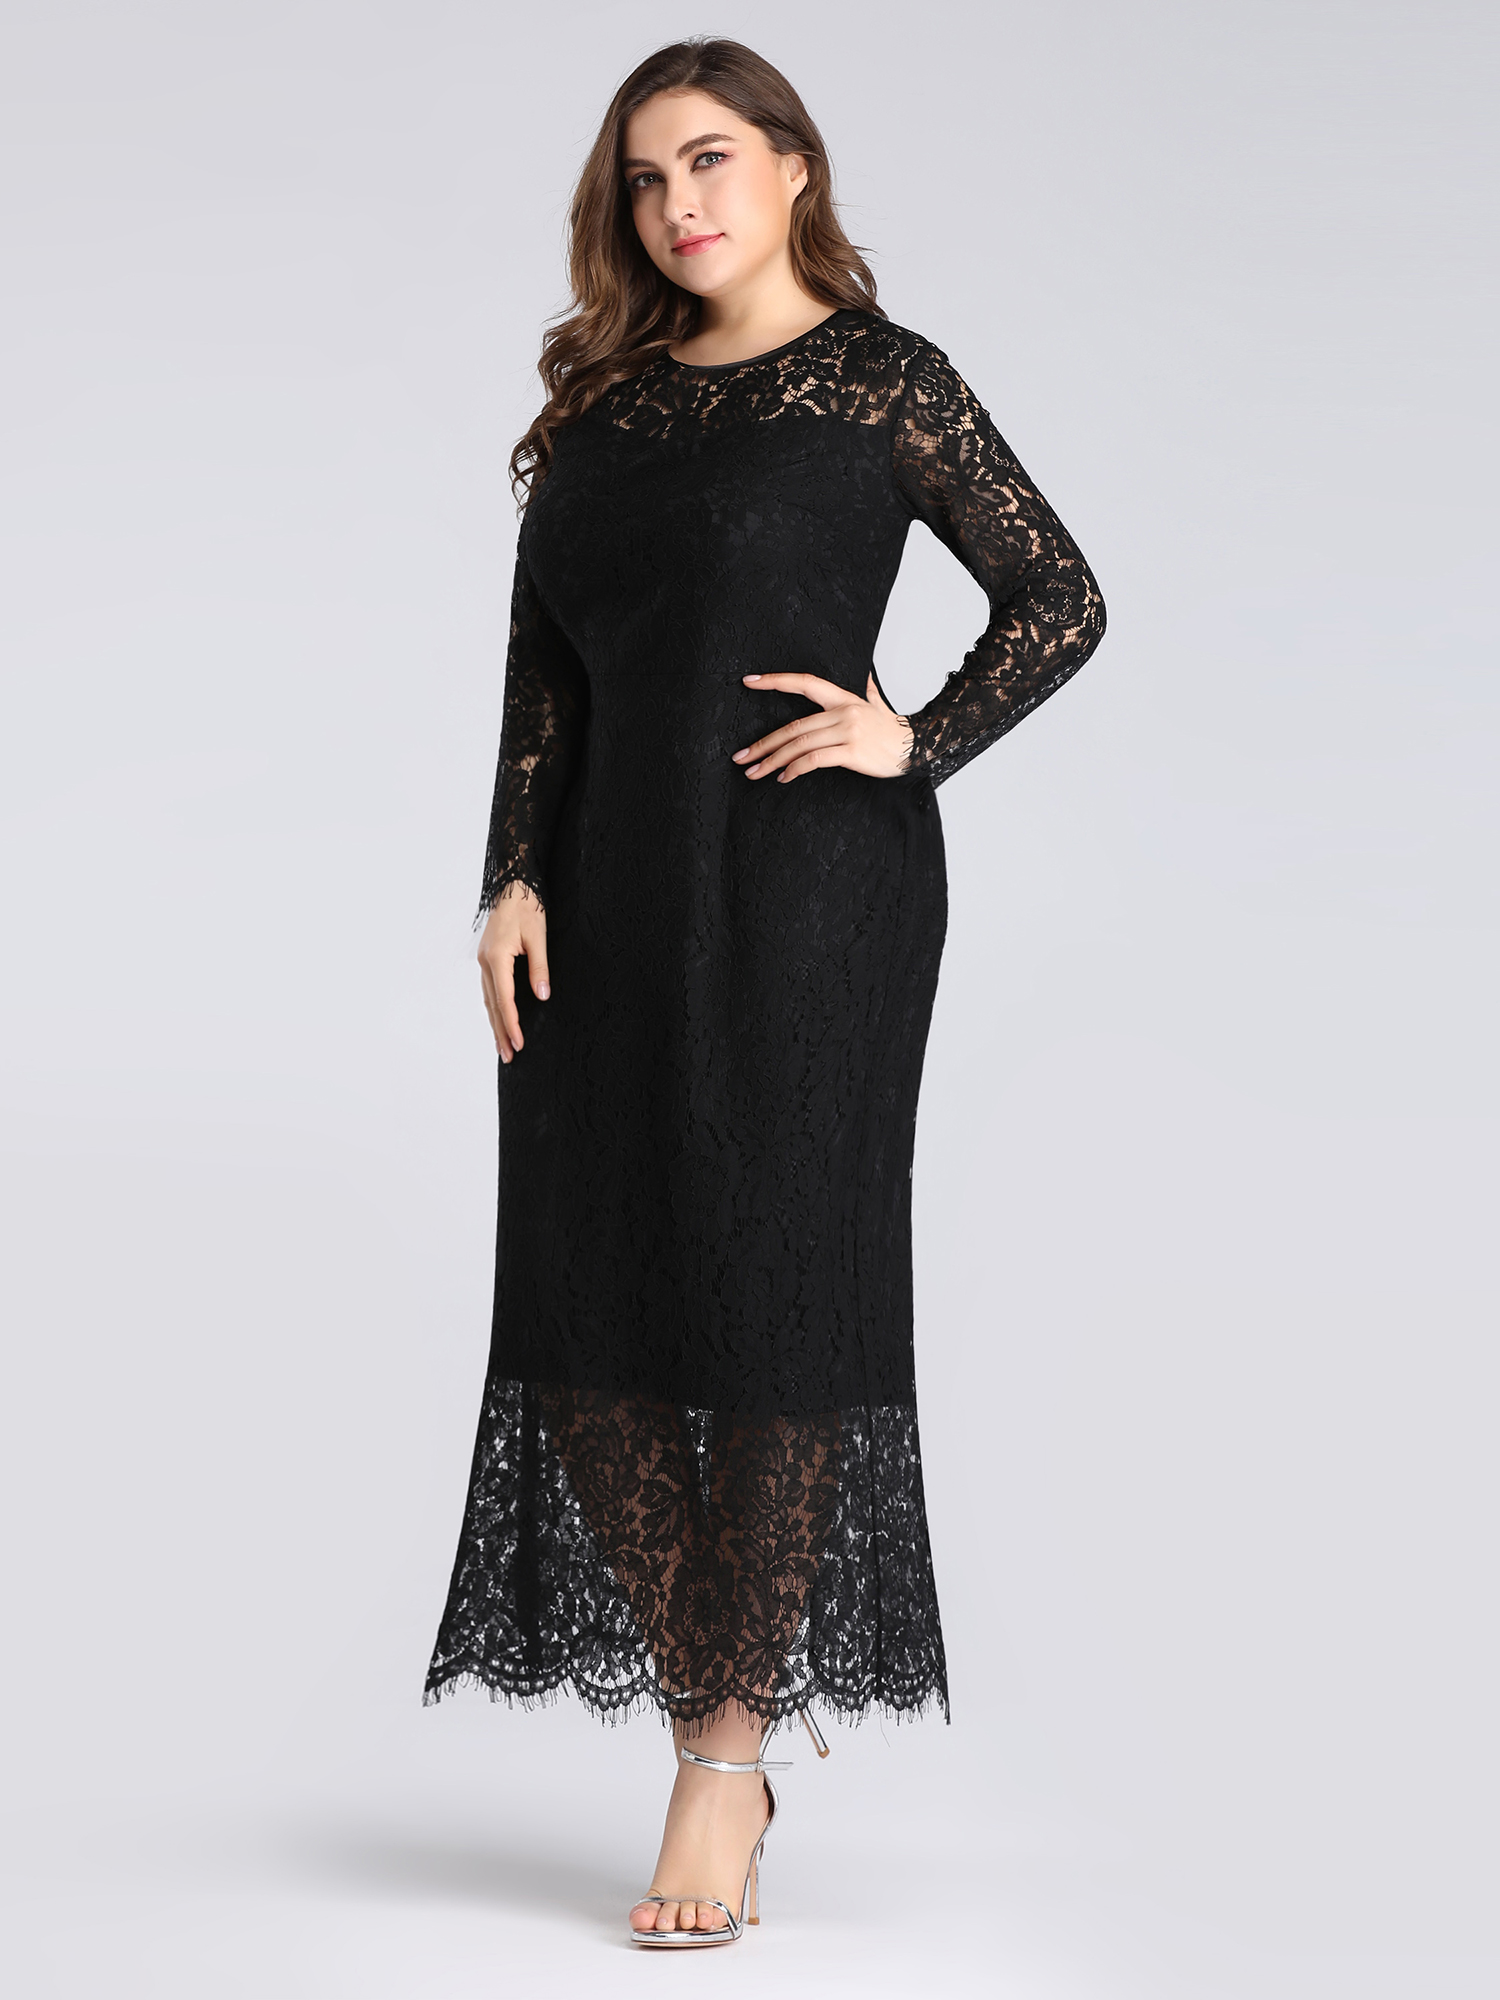 Ever-pretty-US-Plus-Size-Black-Lace-Long-Sleeve-Party-Dresses-Evening-Prom-Gowns thumbnail 10